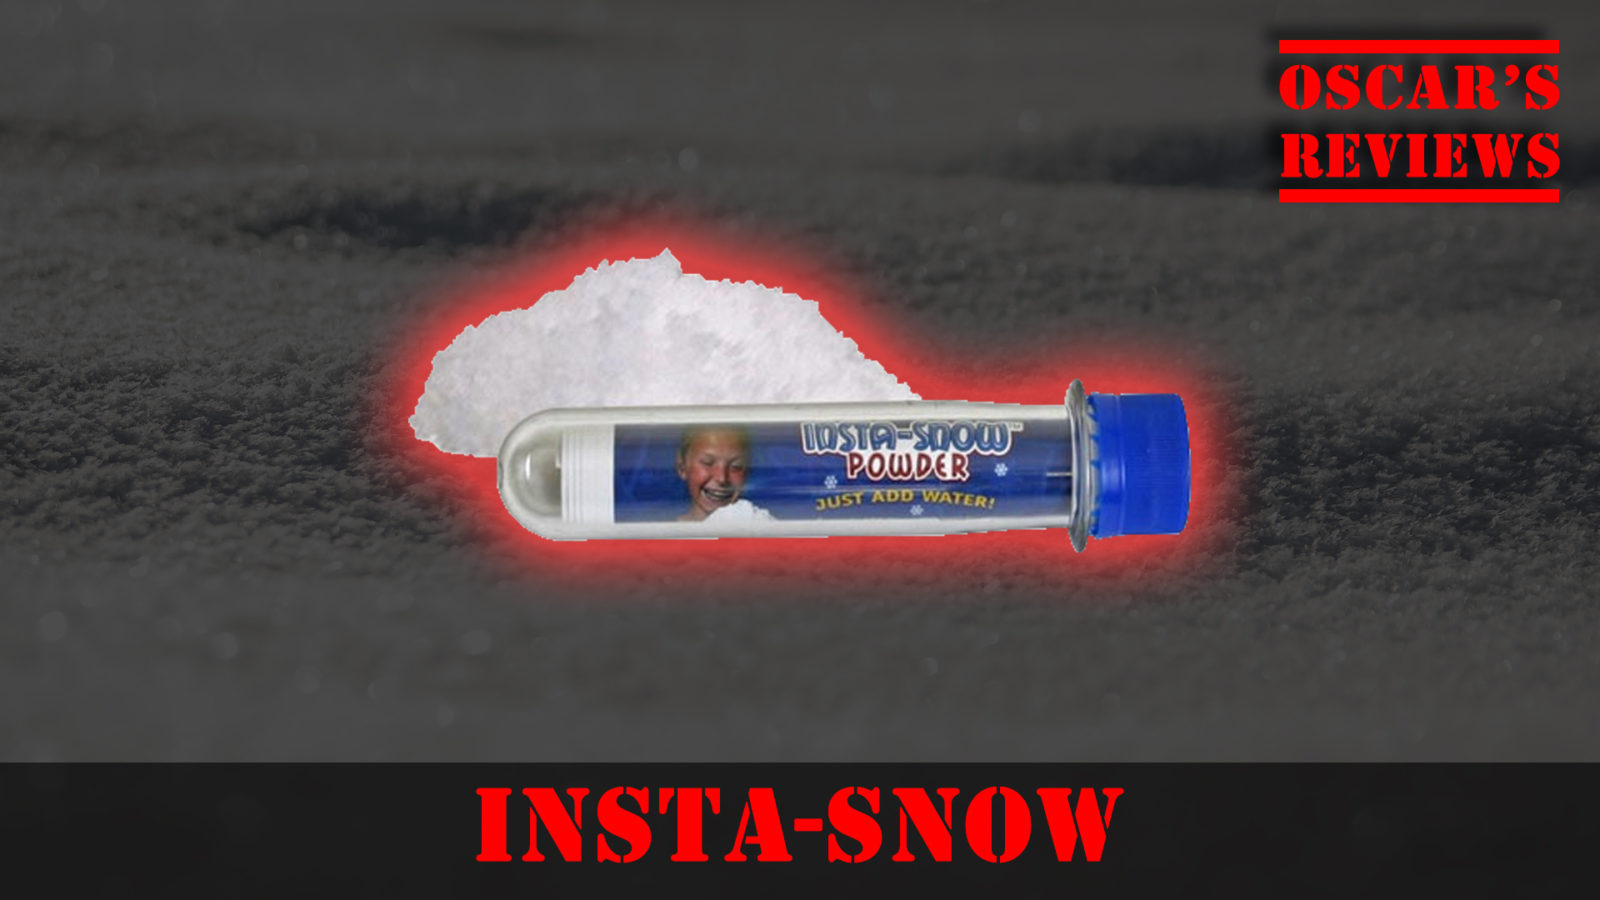 Making Our Own Snow with Insta-Snow